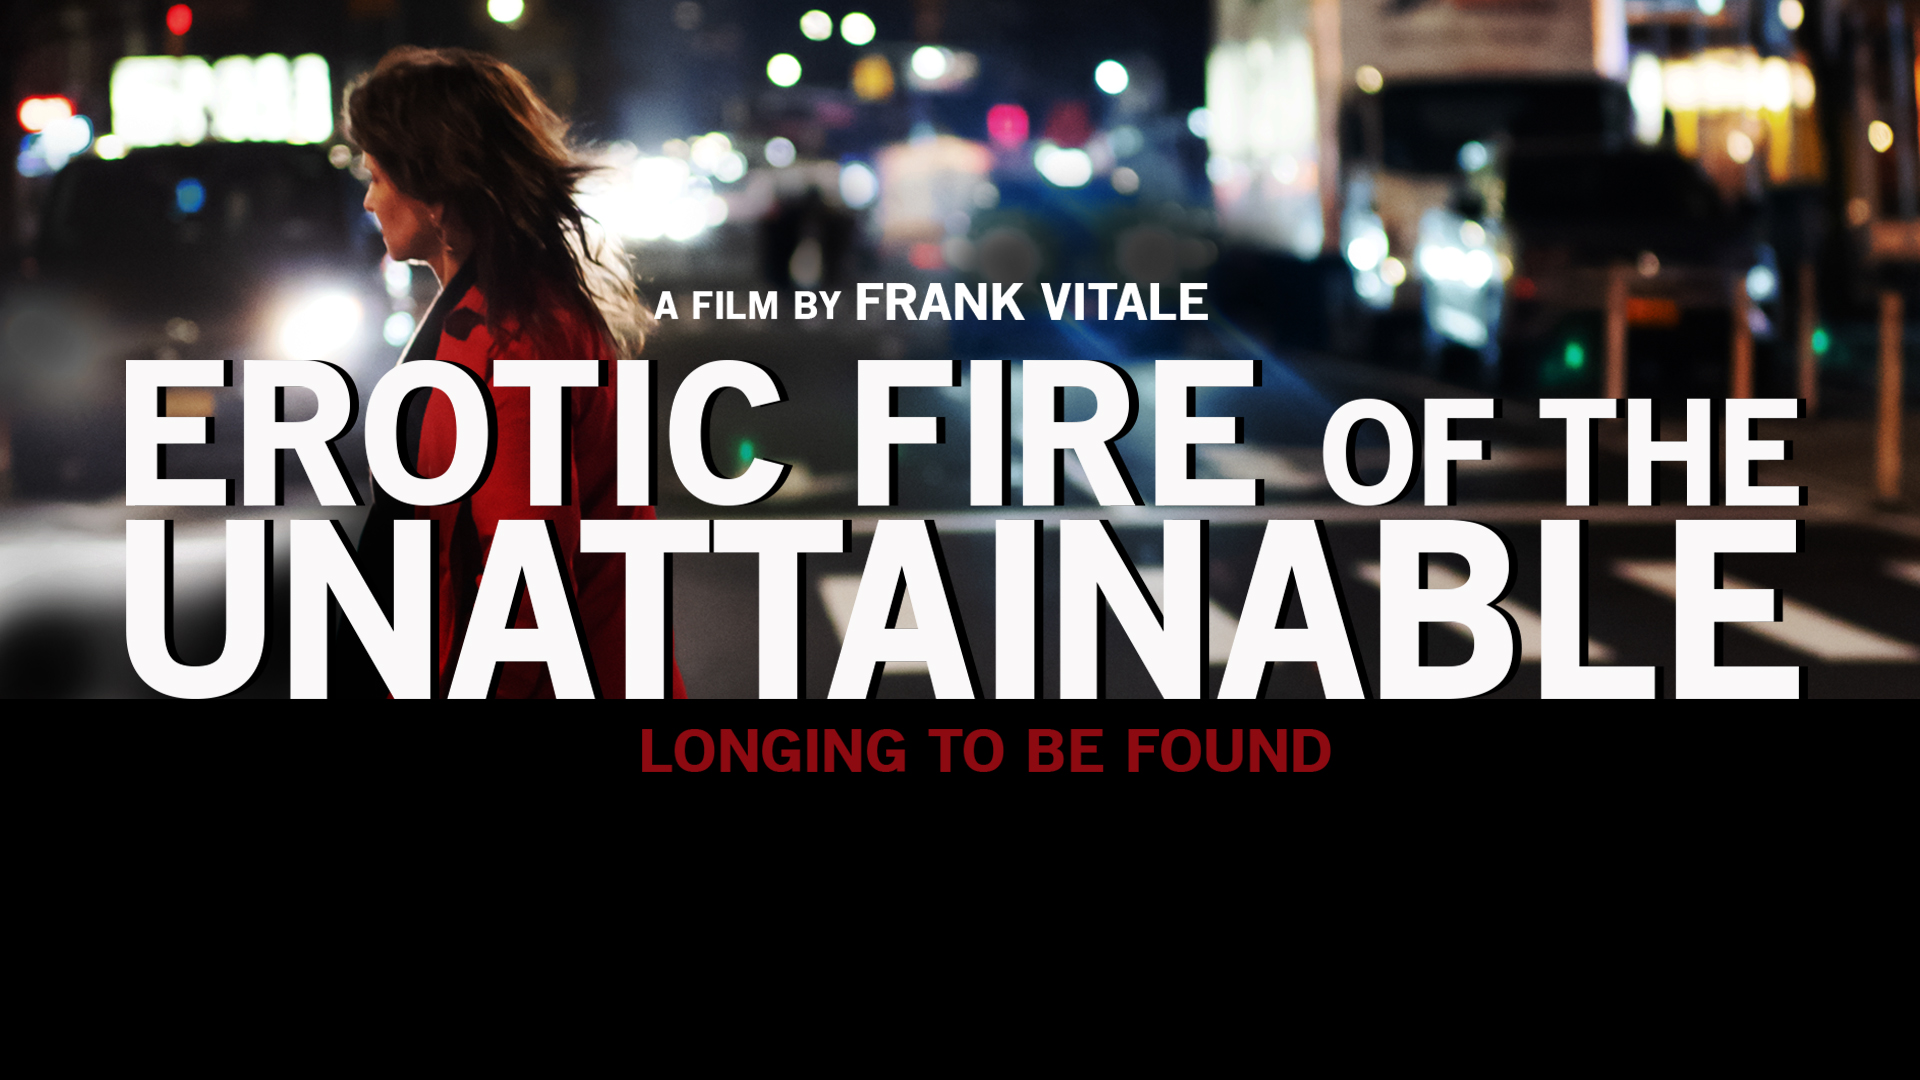 Erotic Fire of The Unattainable